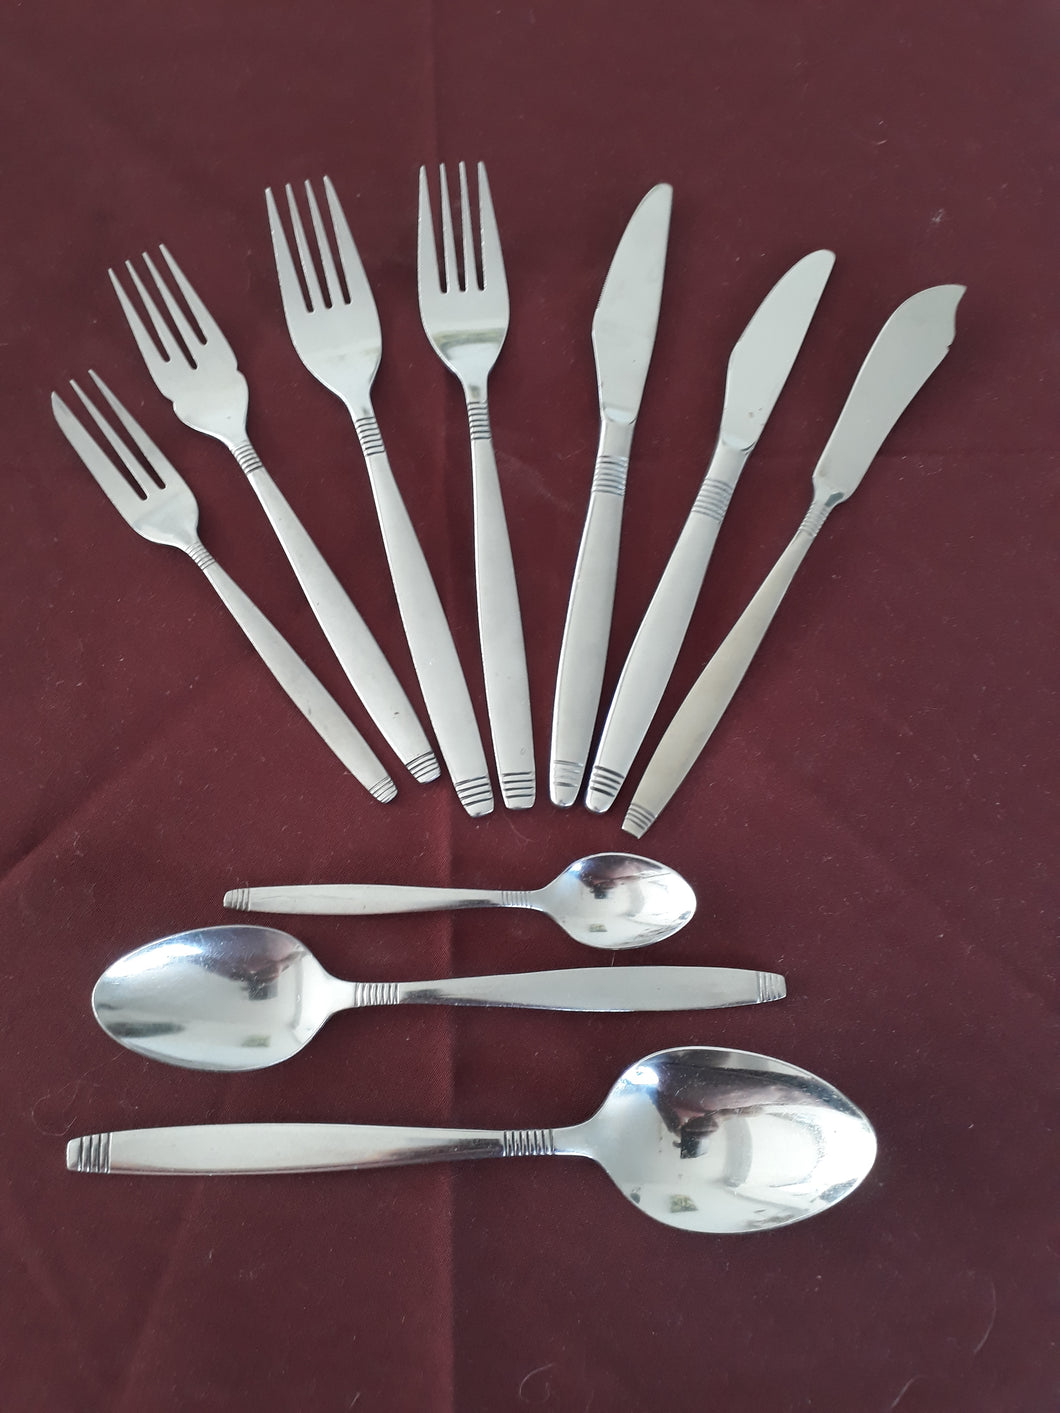 Serving Fork from the Style cutlery collection